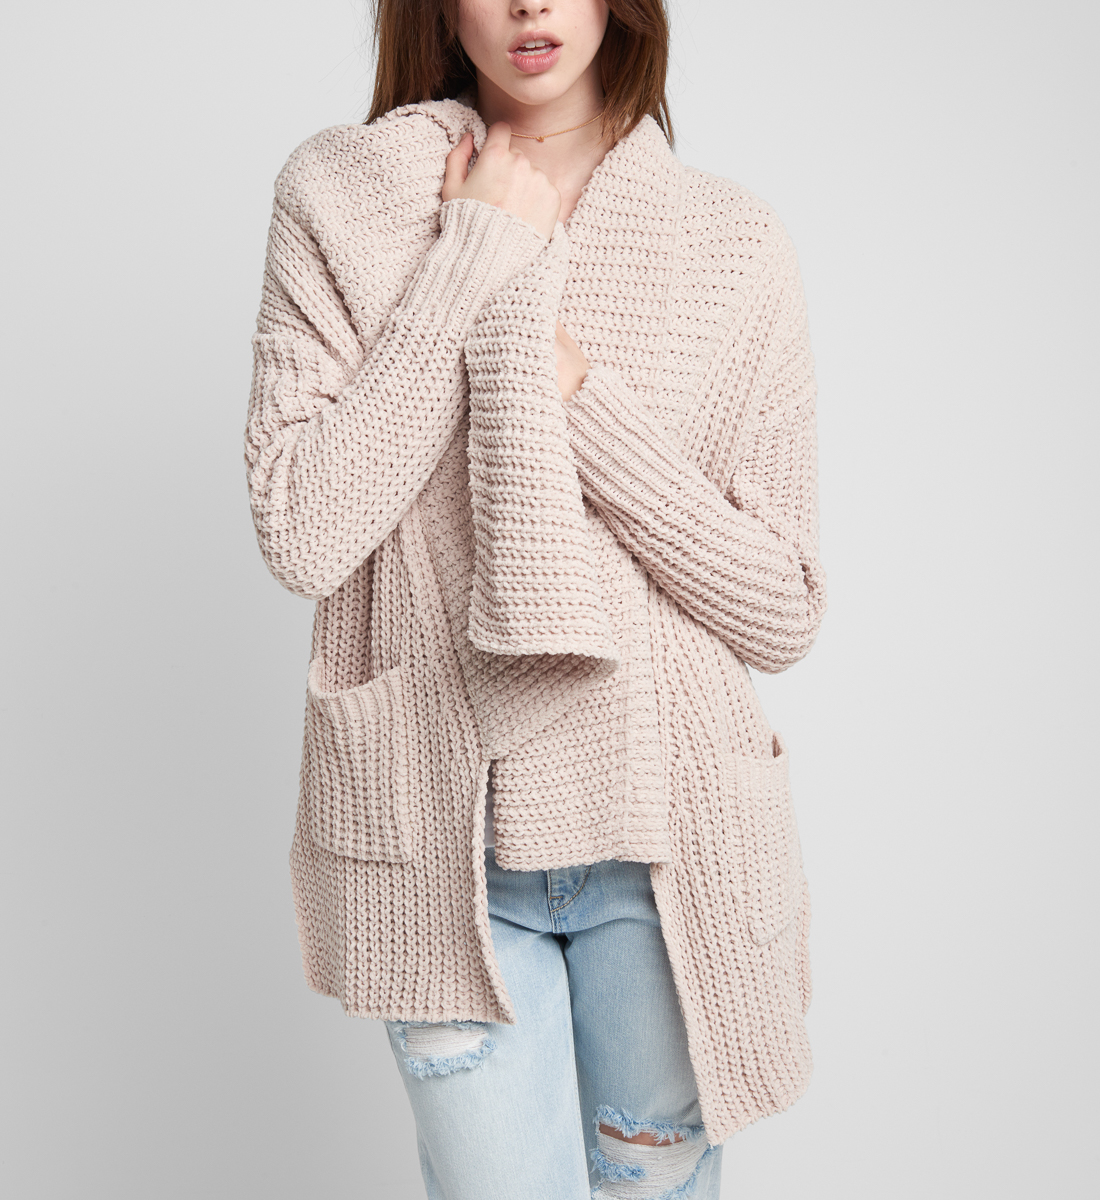 Pacie Sweater Front